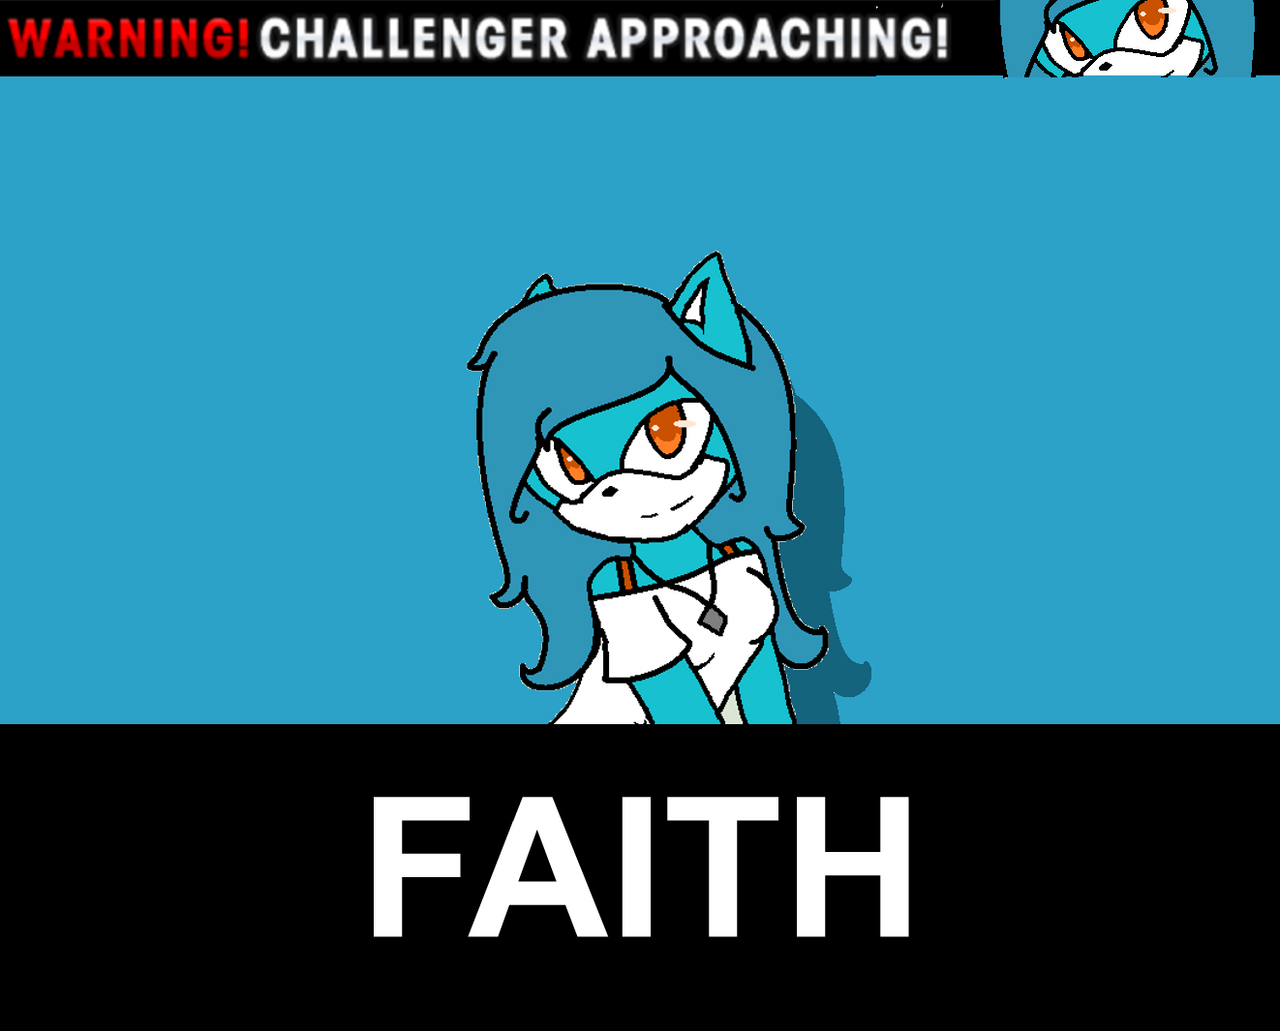 how to make a challenger approaching